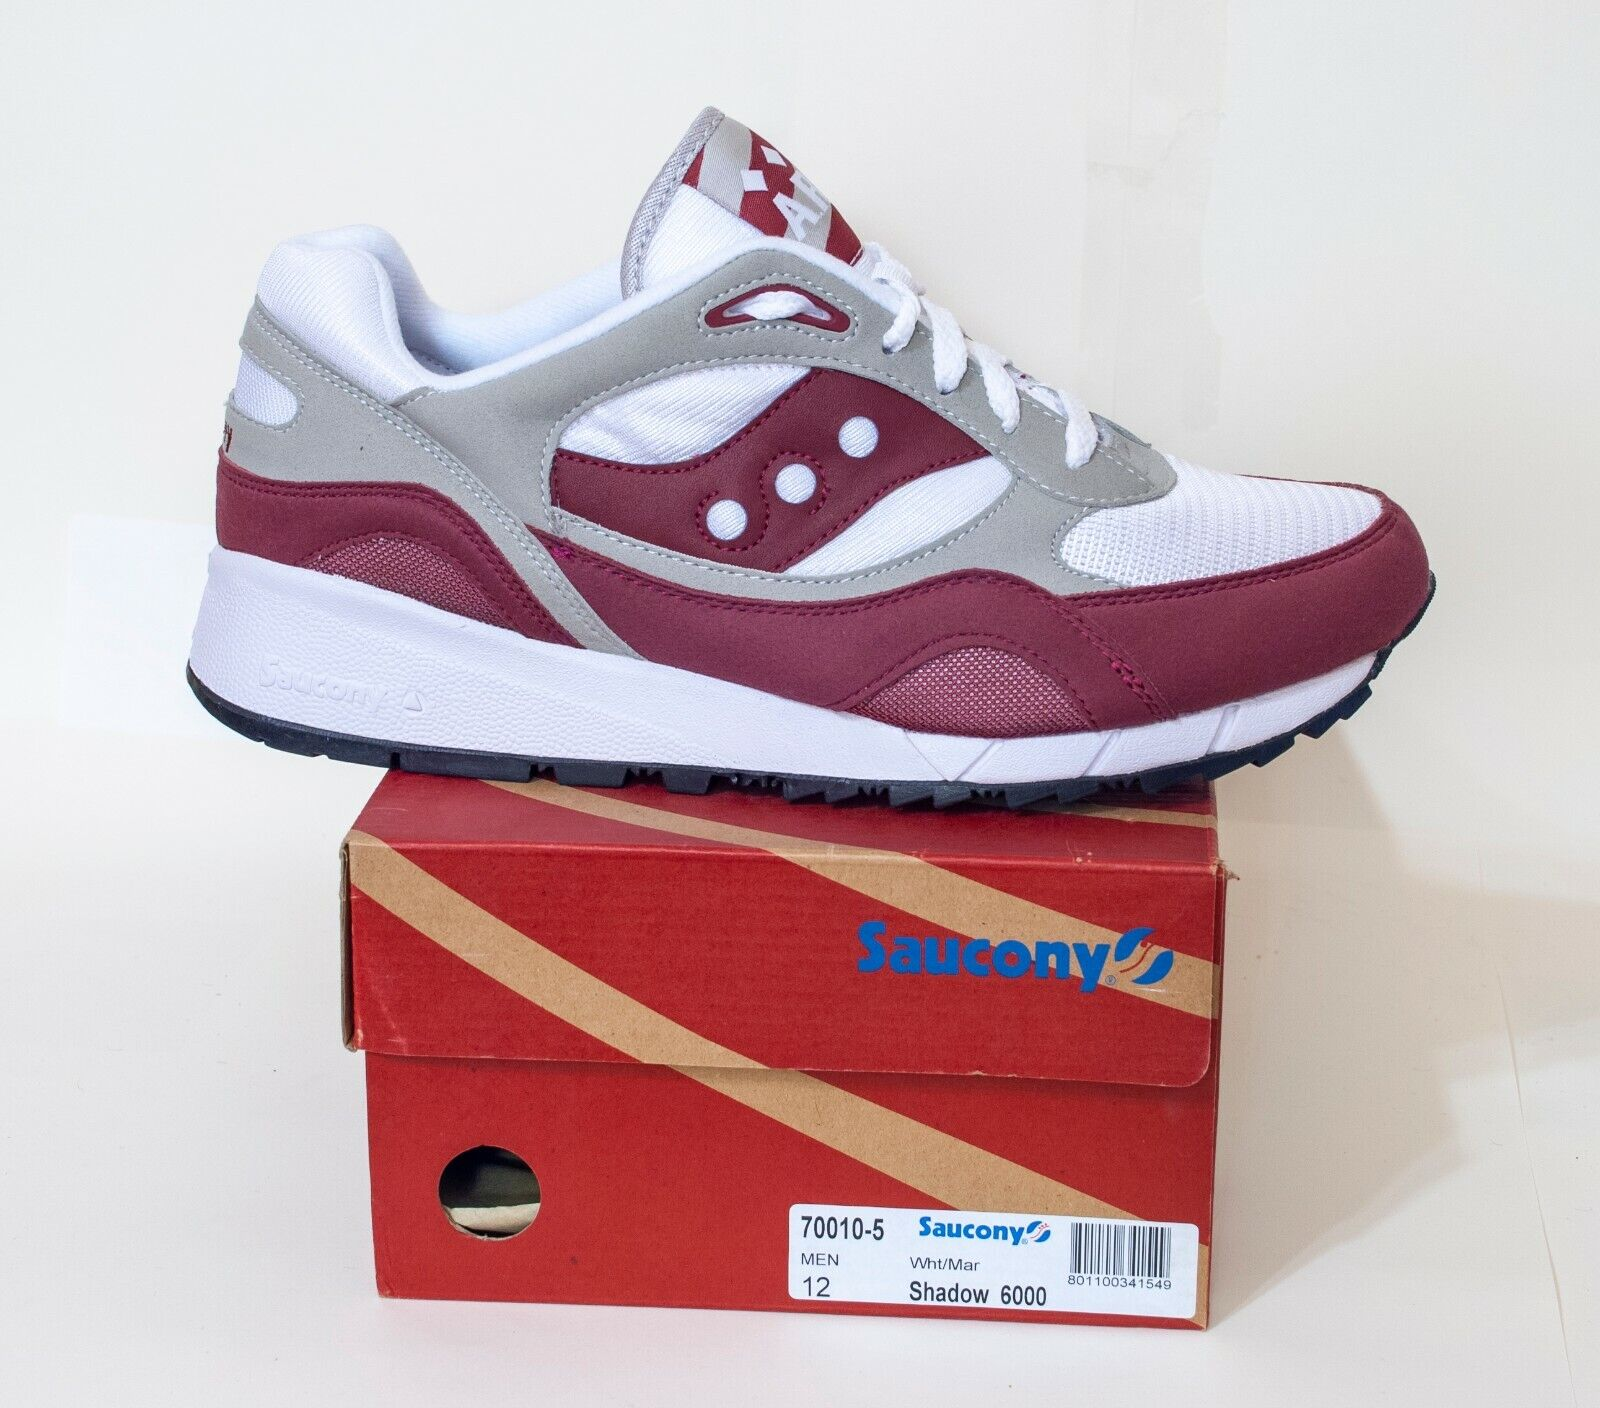 ARC x Saucony Shadow 6000 Size 12 NEW Alife men's running collab